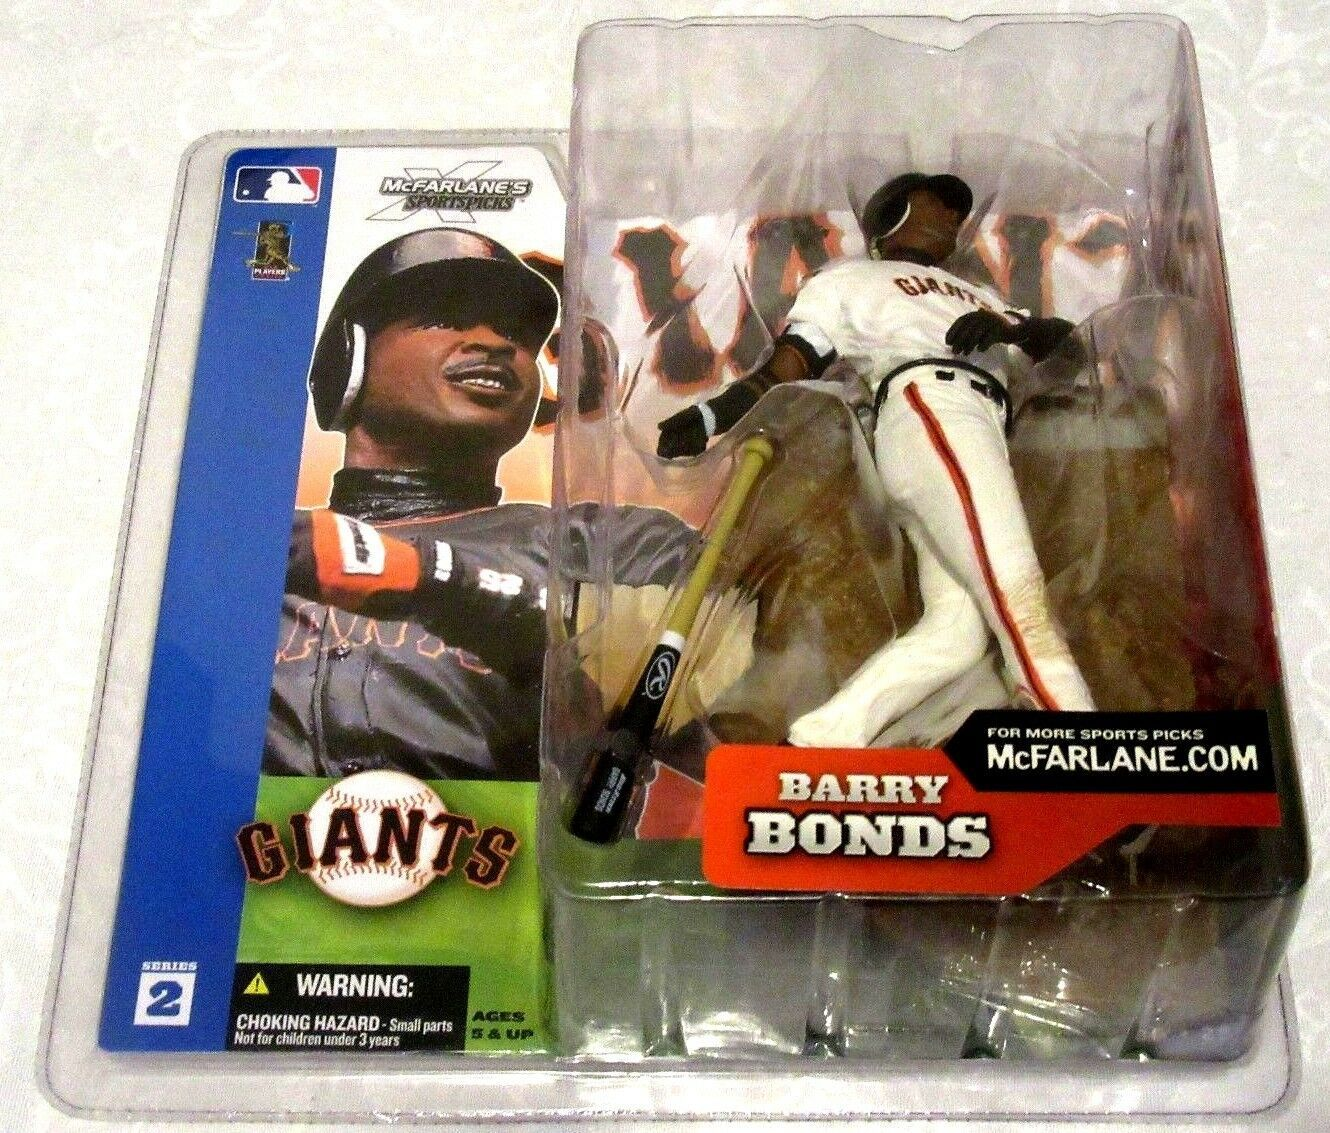 Barry Bonds Series 2 2002 McFarlane San Francisco Giants Outfield Figure-New!